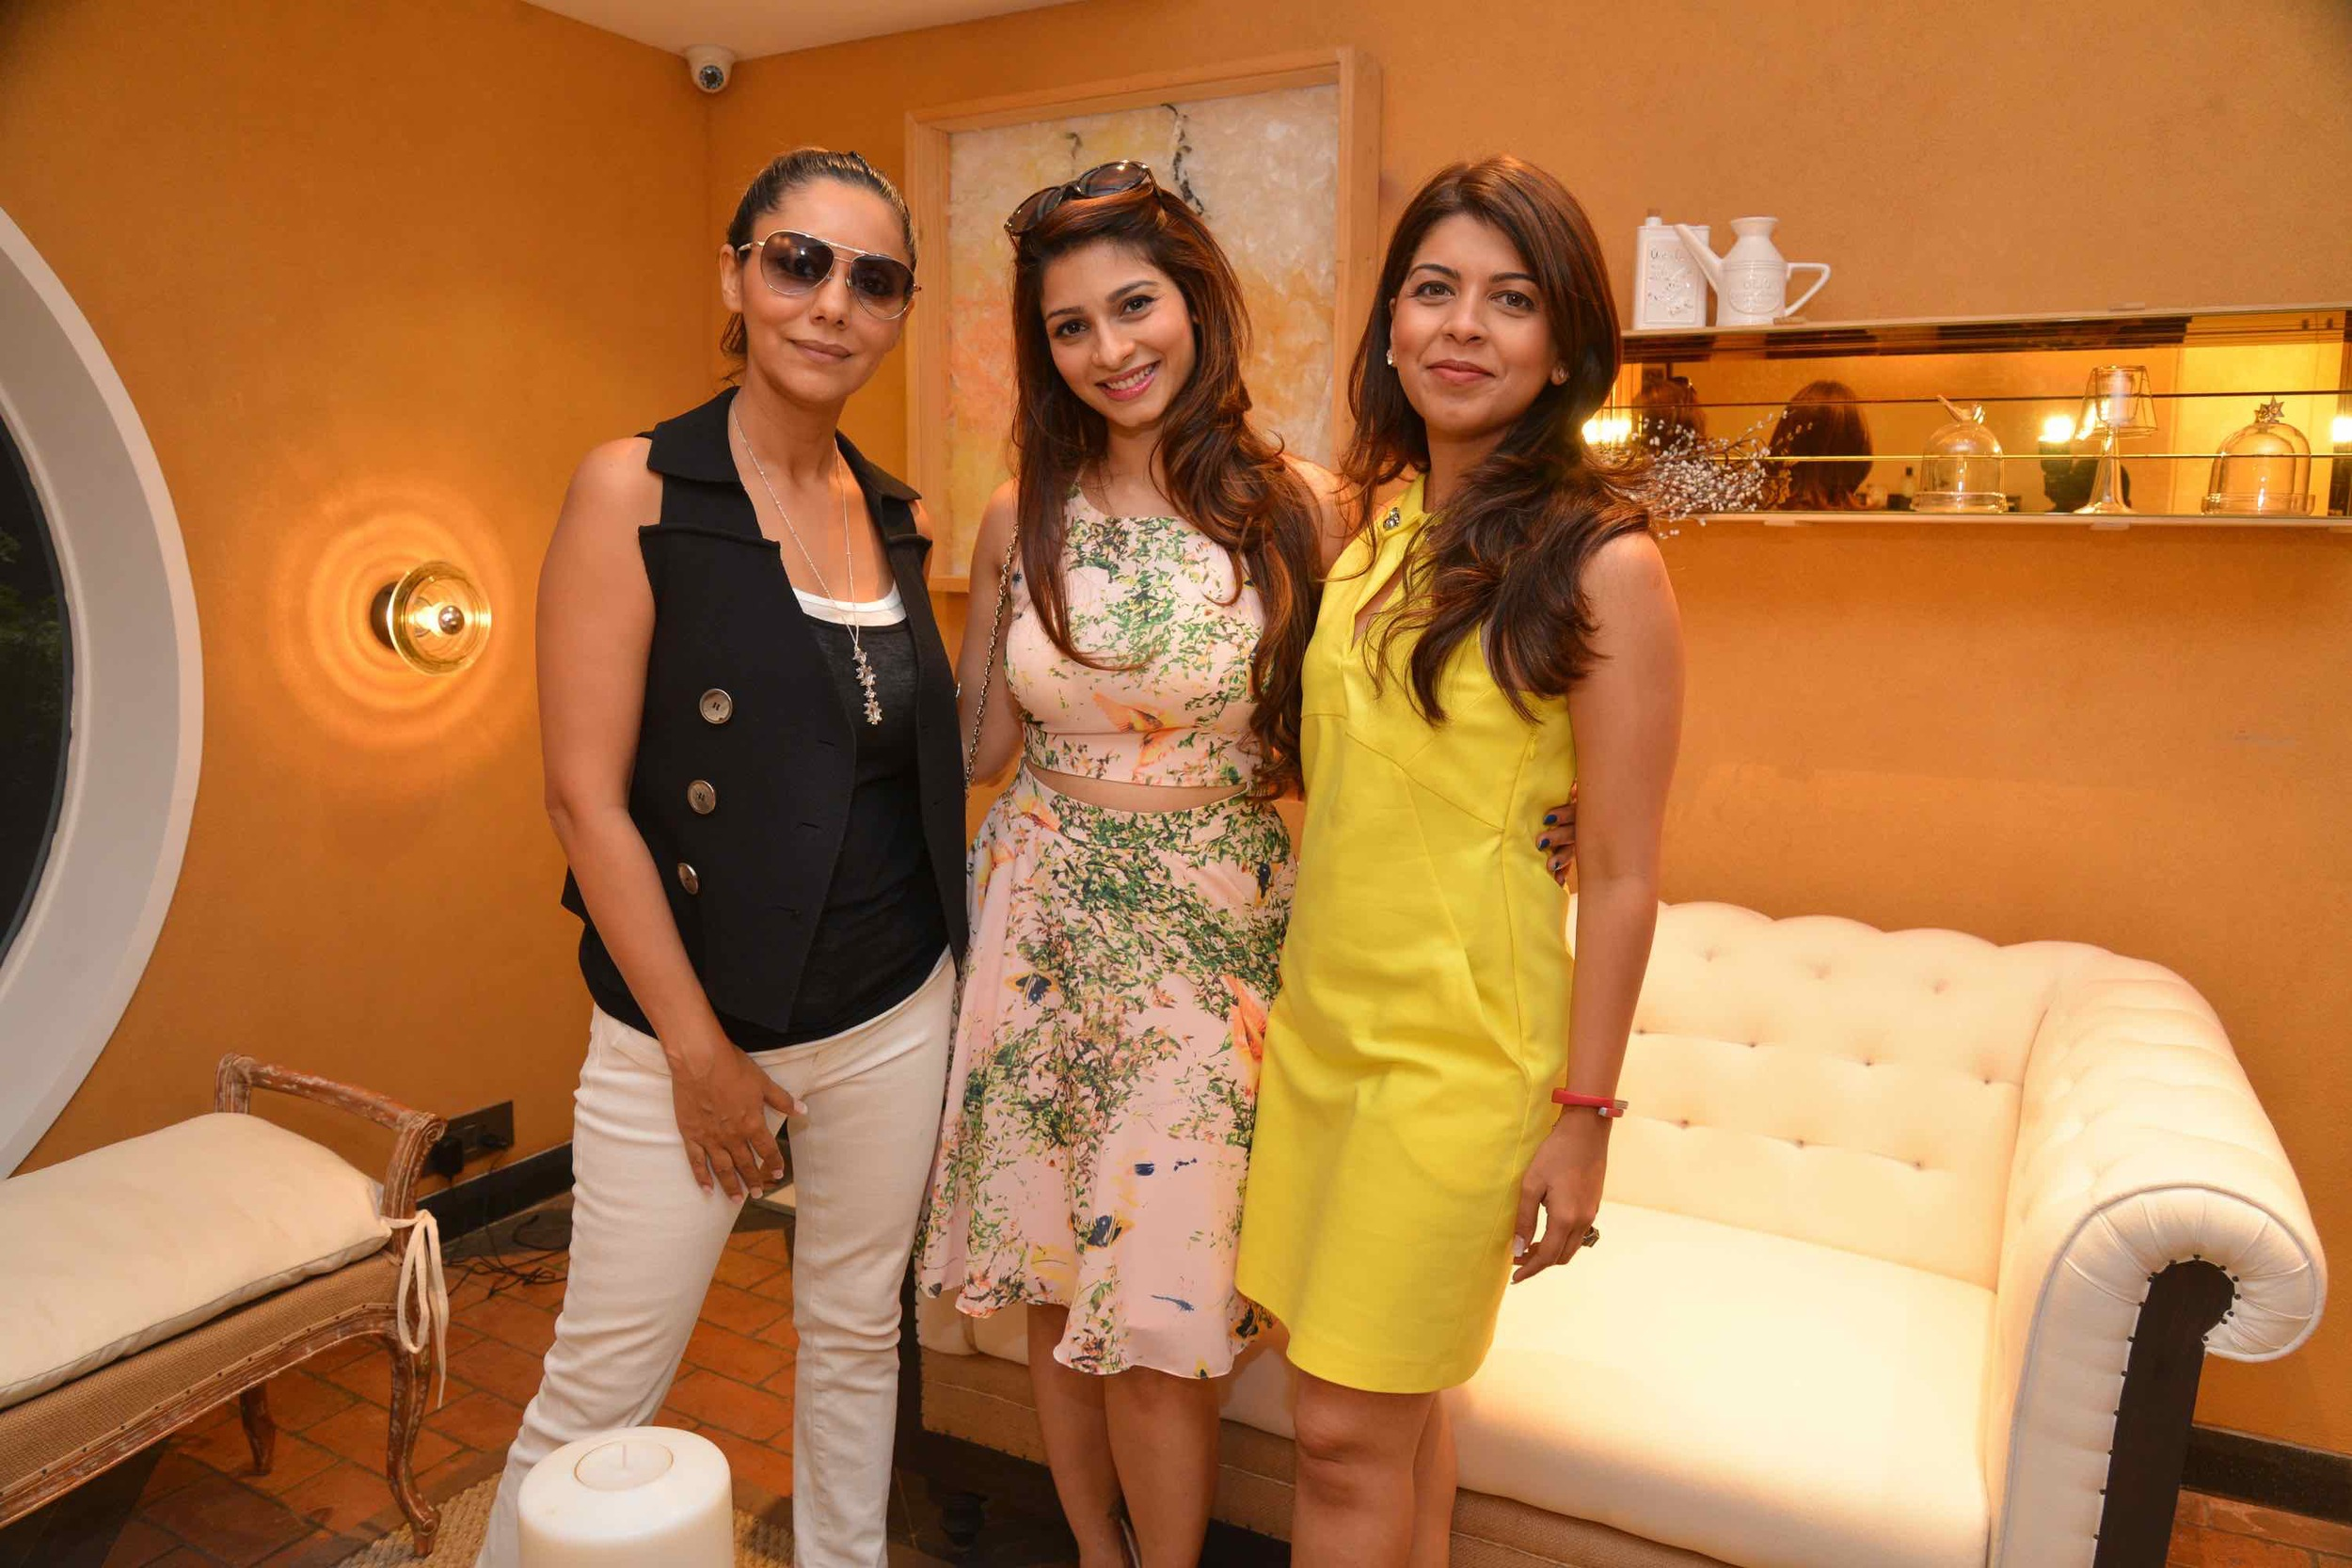 Gauri Khan, Tanisha Mukherji And Tanaaz Bhatia At The Villeroy & Boch High Tea